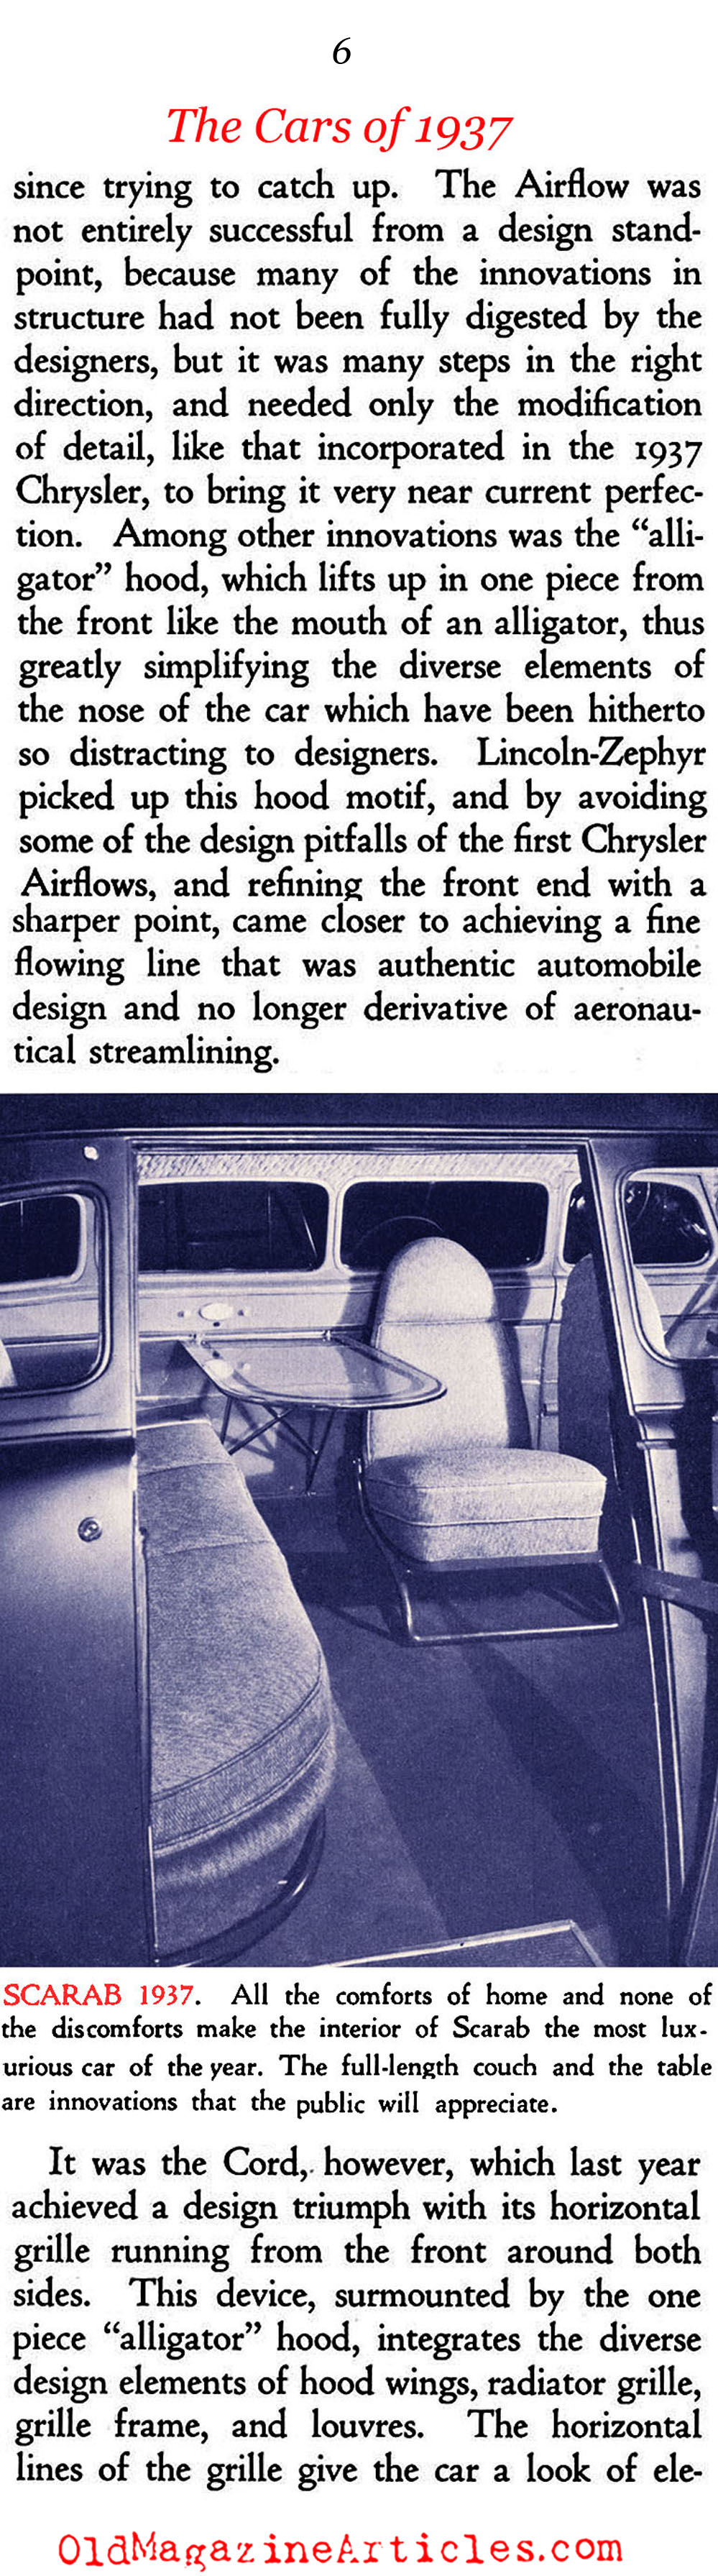 The Streamlining of Cars (Creative Art Magazine, 1936)